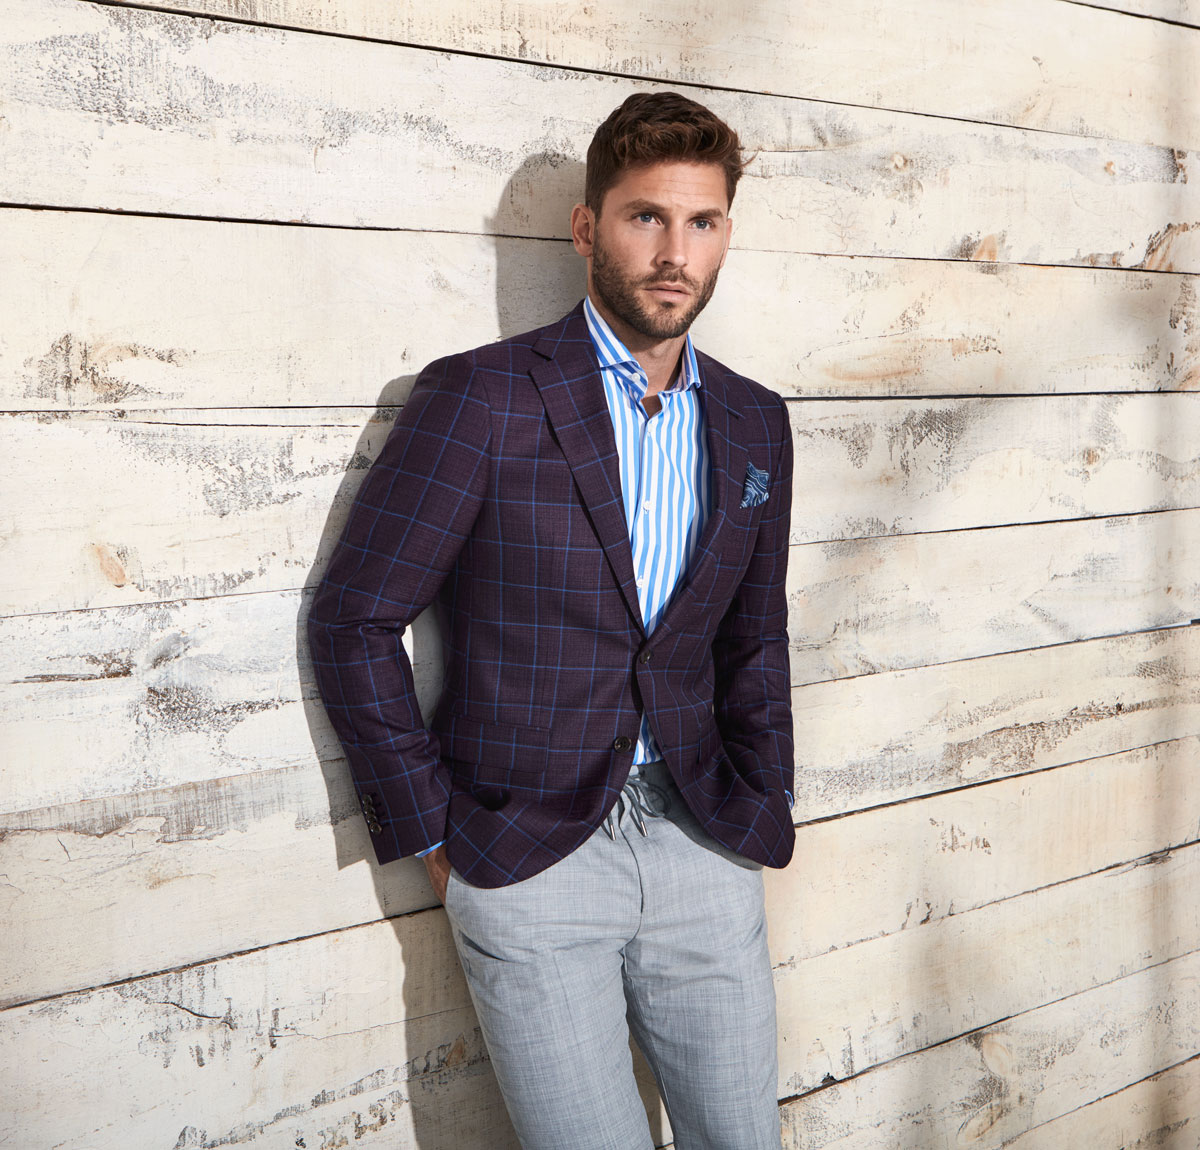 HOW TO WEAR A SUIT WITHOUT A TIE